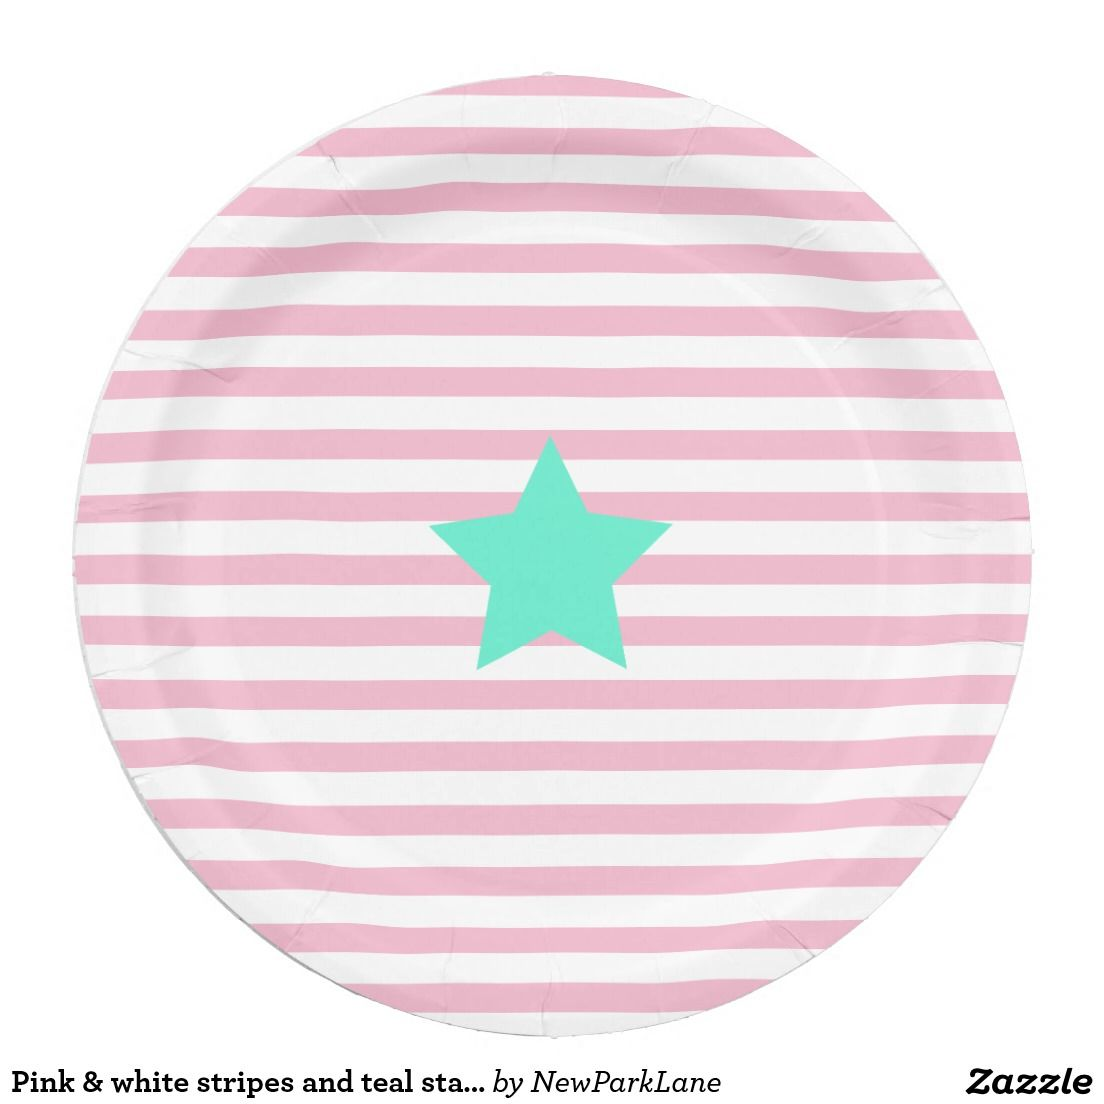 Pink & white stripes and teal star - Paper Plates